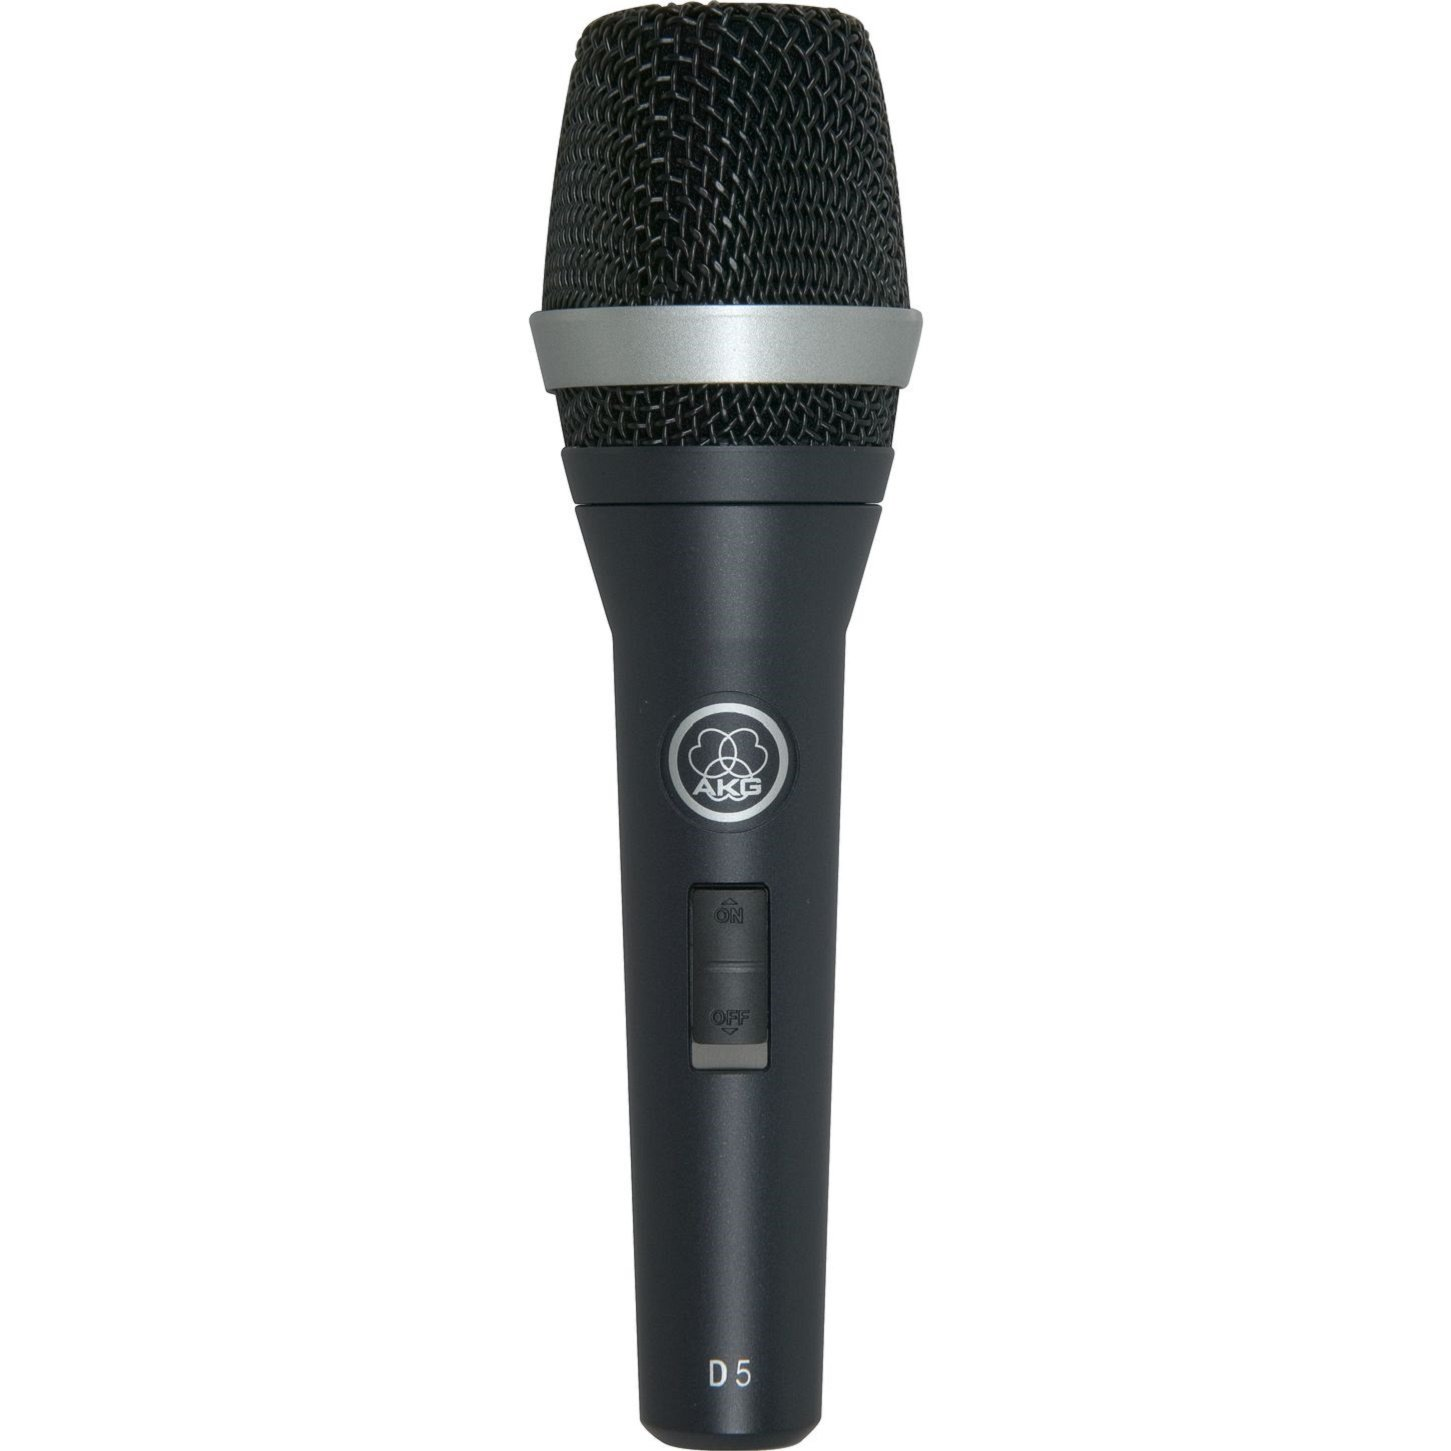 AKG D5S Professional Dynamic Vocal Microphone with On/Off Switch JBL